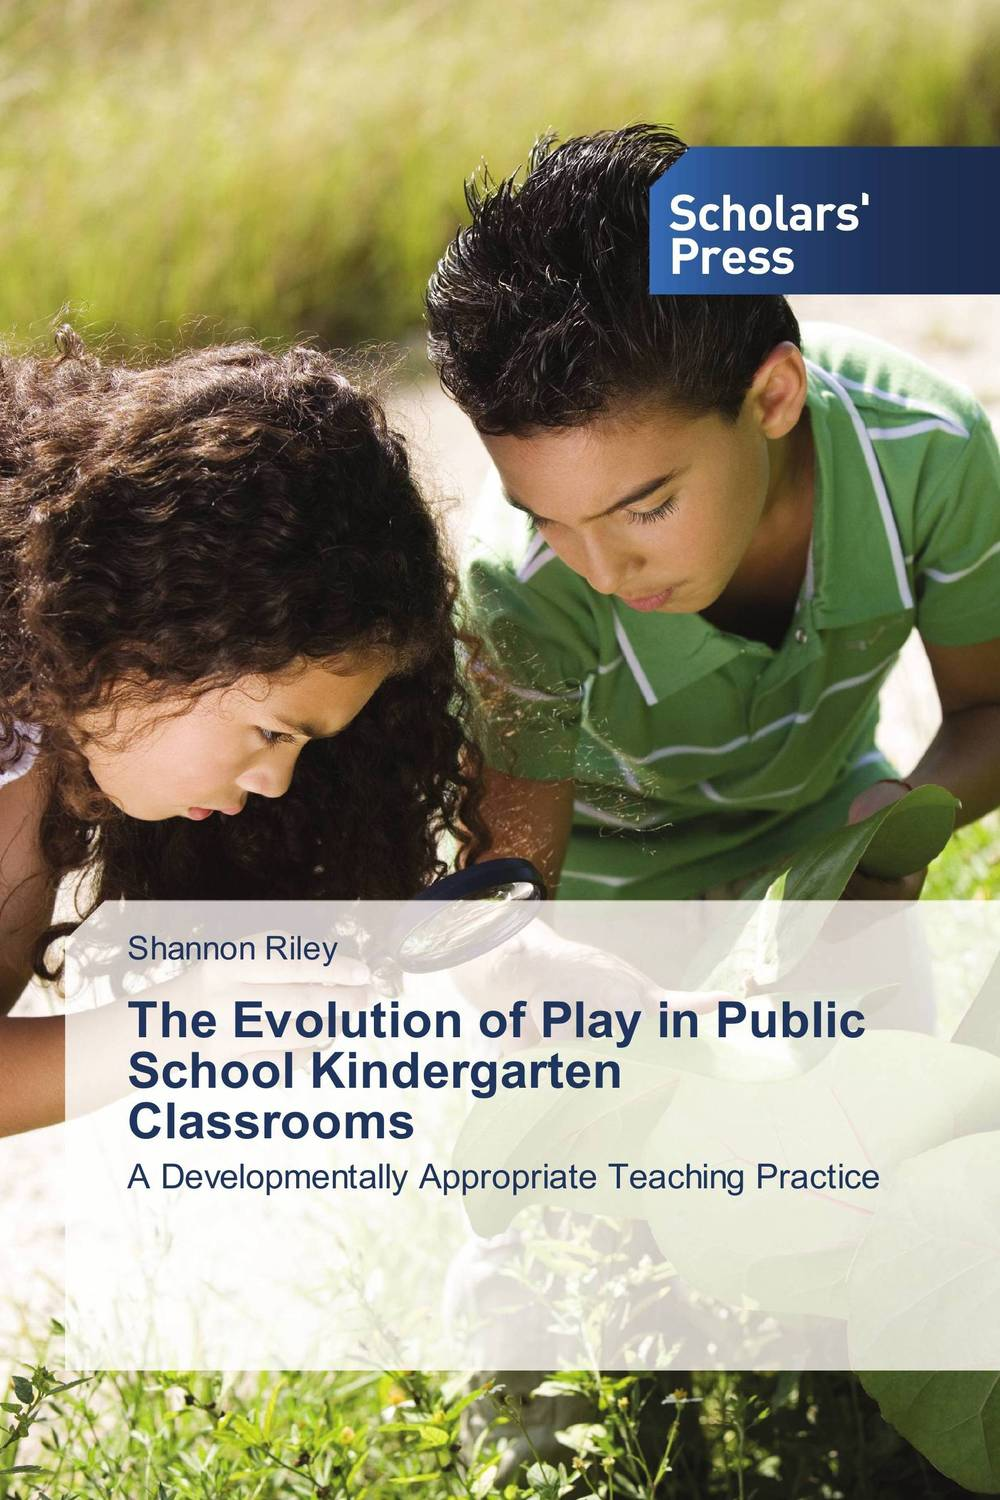 The Evolution of Play in Public School Kindergarten Classrooms